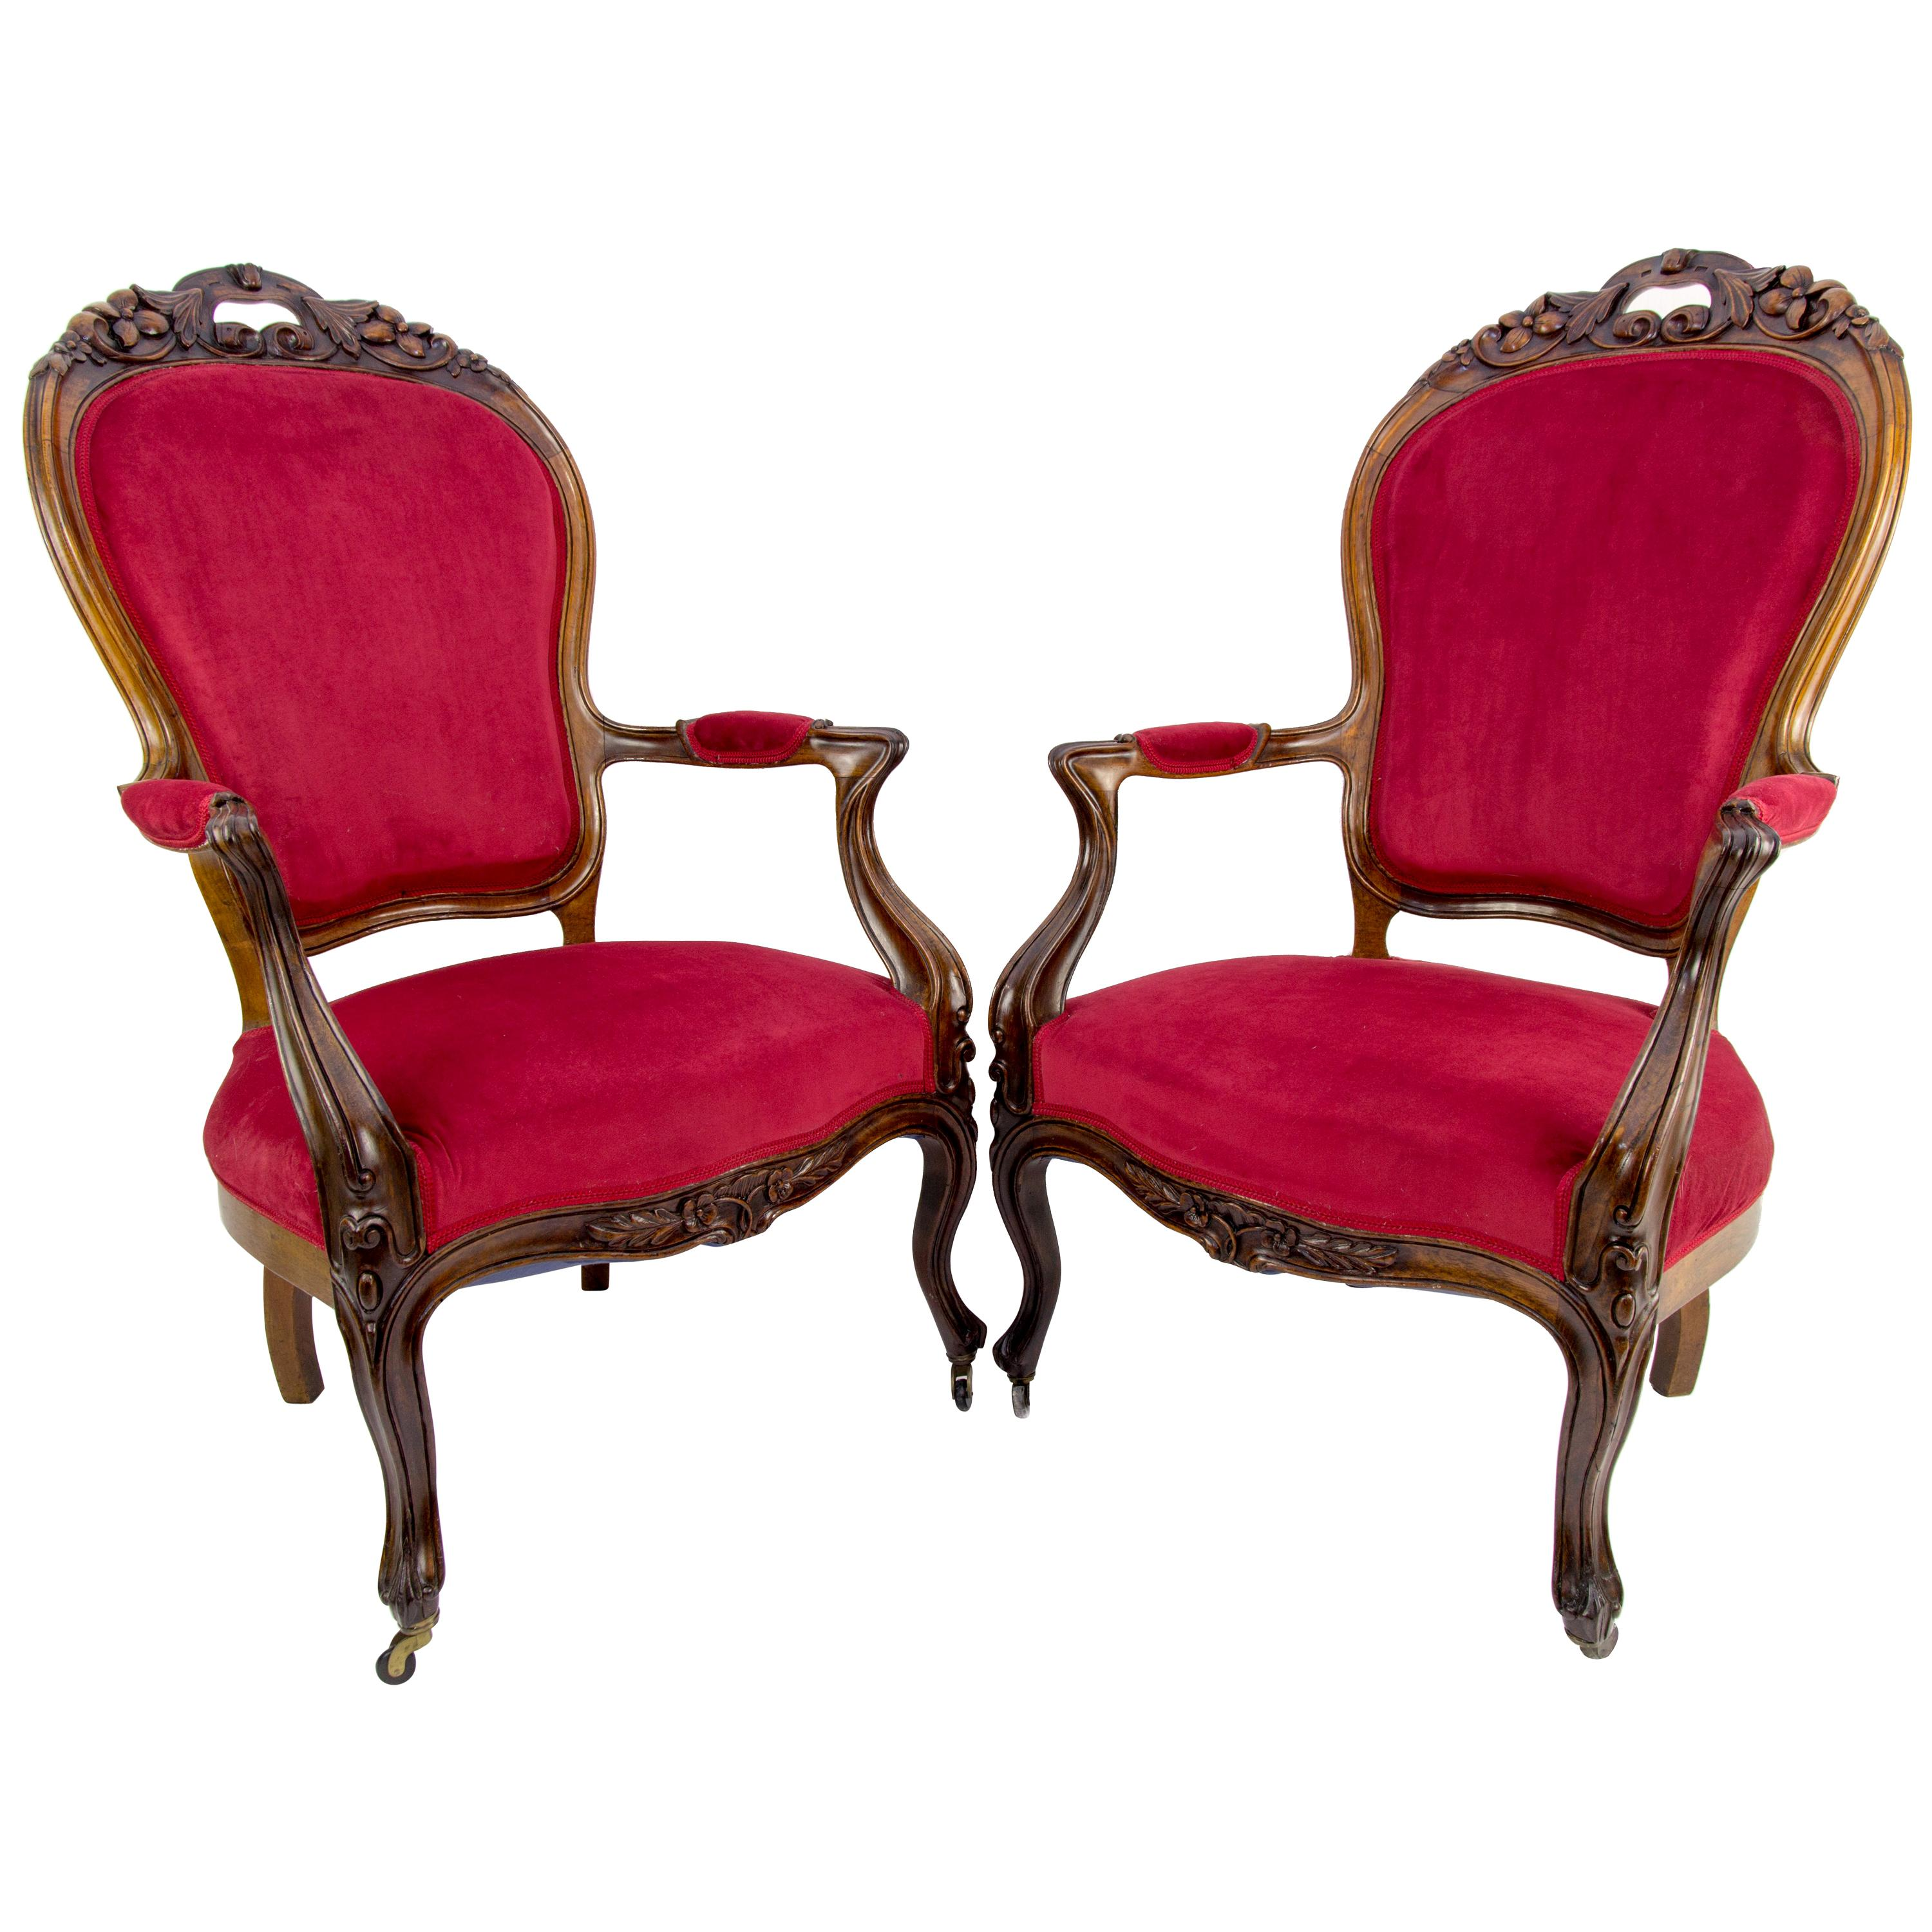 Pair of Louis XV Style French Fauteuil Walnut Armchairs